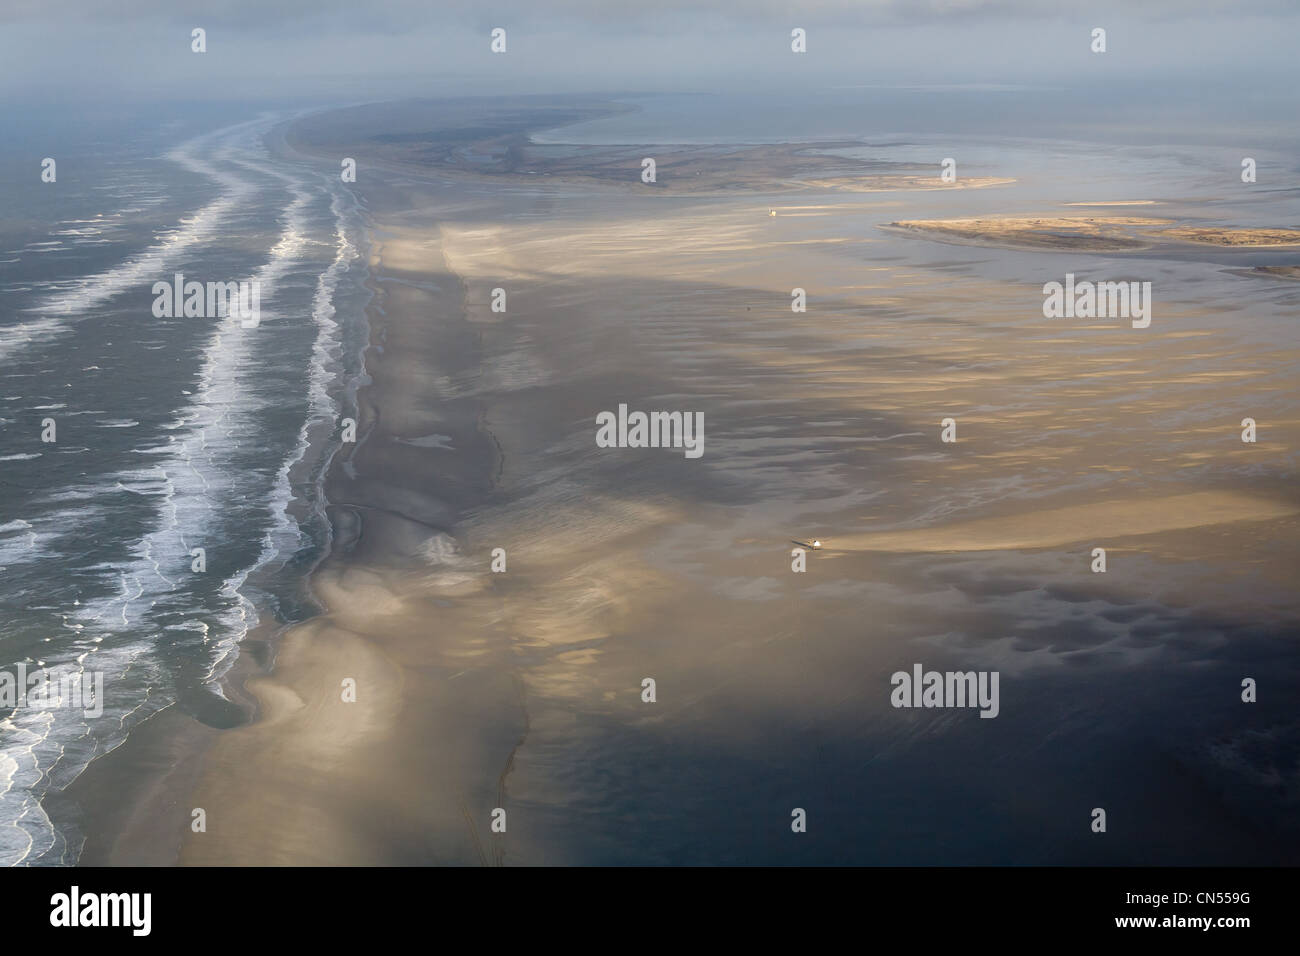 Netherlands, North Holland, Texel, the Western coast of the island (aerial view) - Stock Image